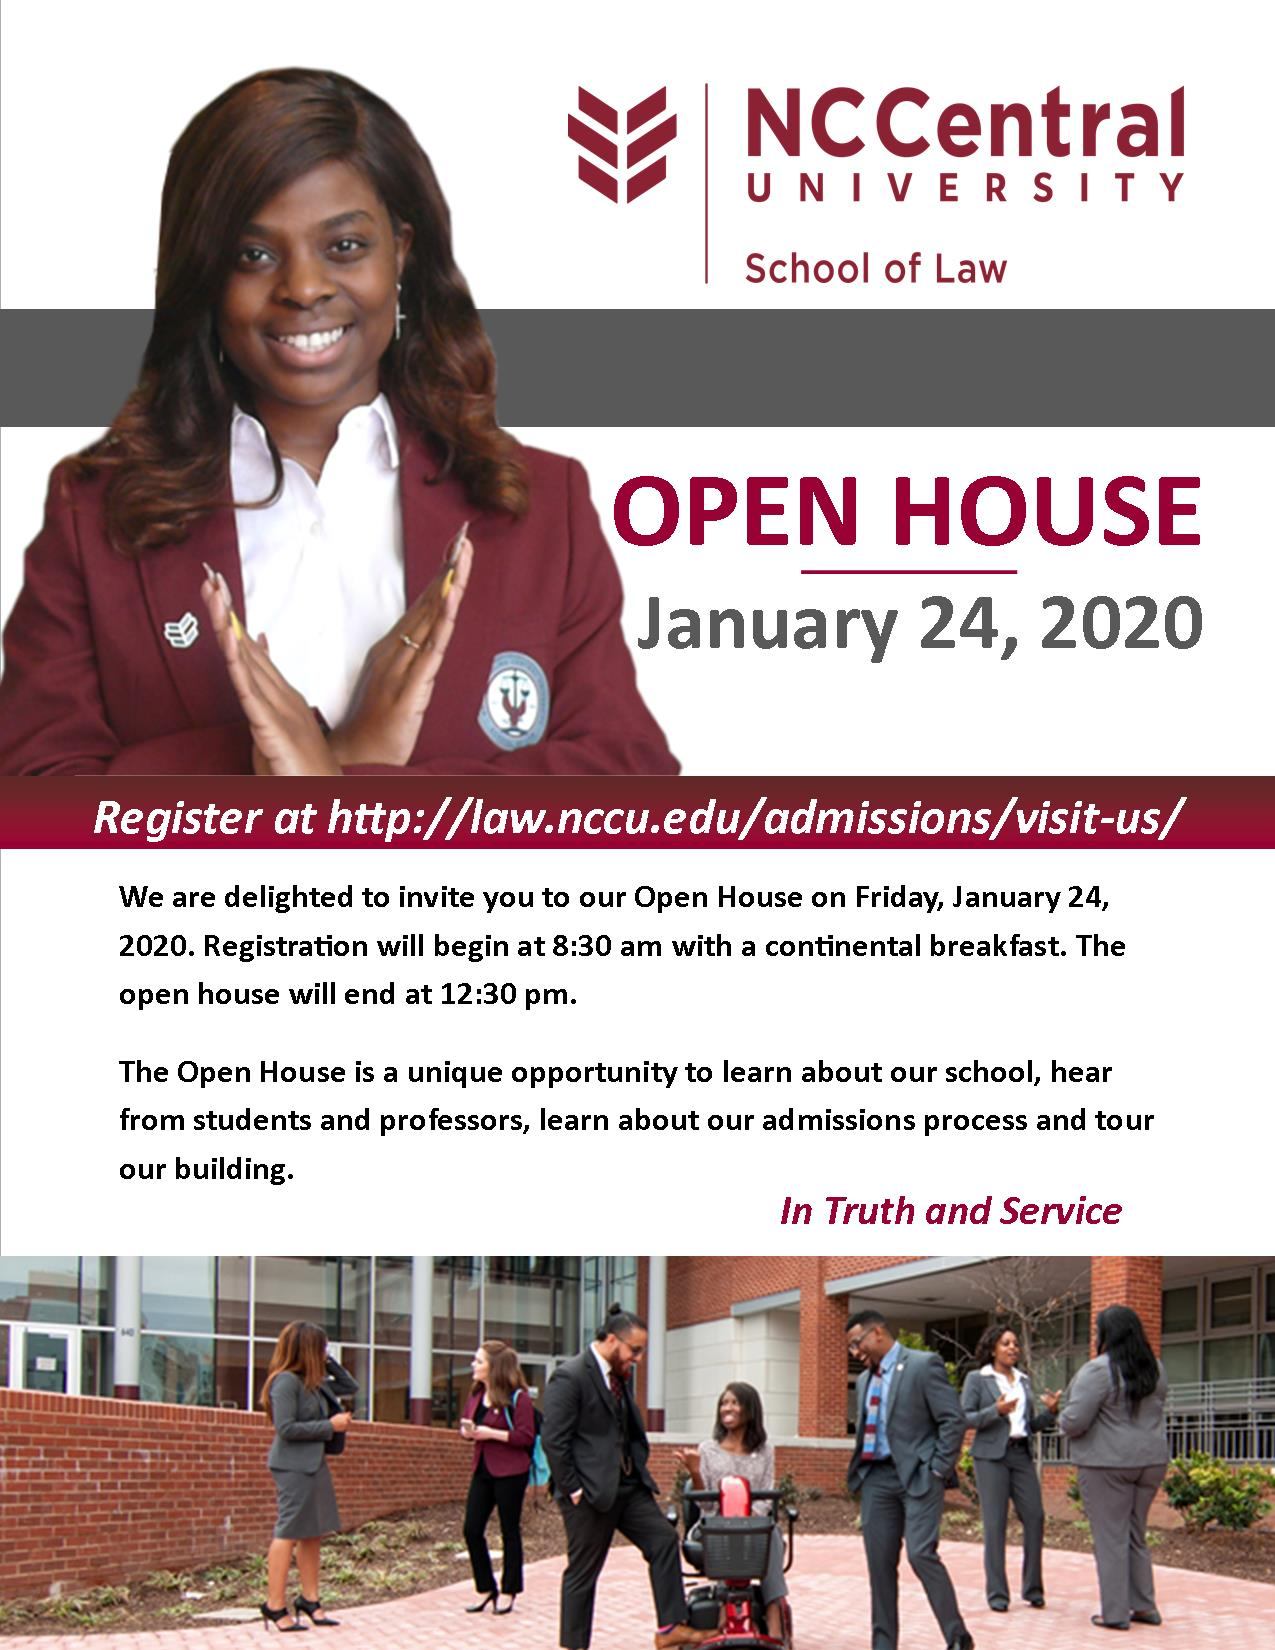 SPRING 2020 OPEN HOUSE @ NCCU School of Law